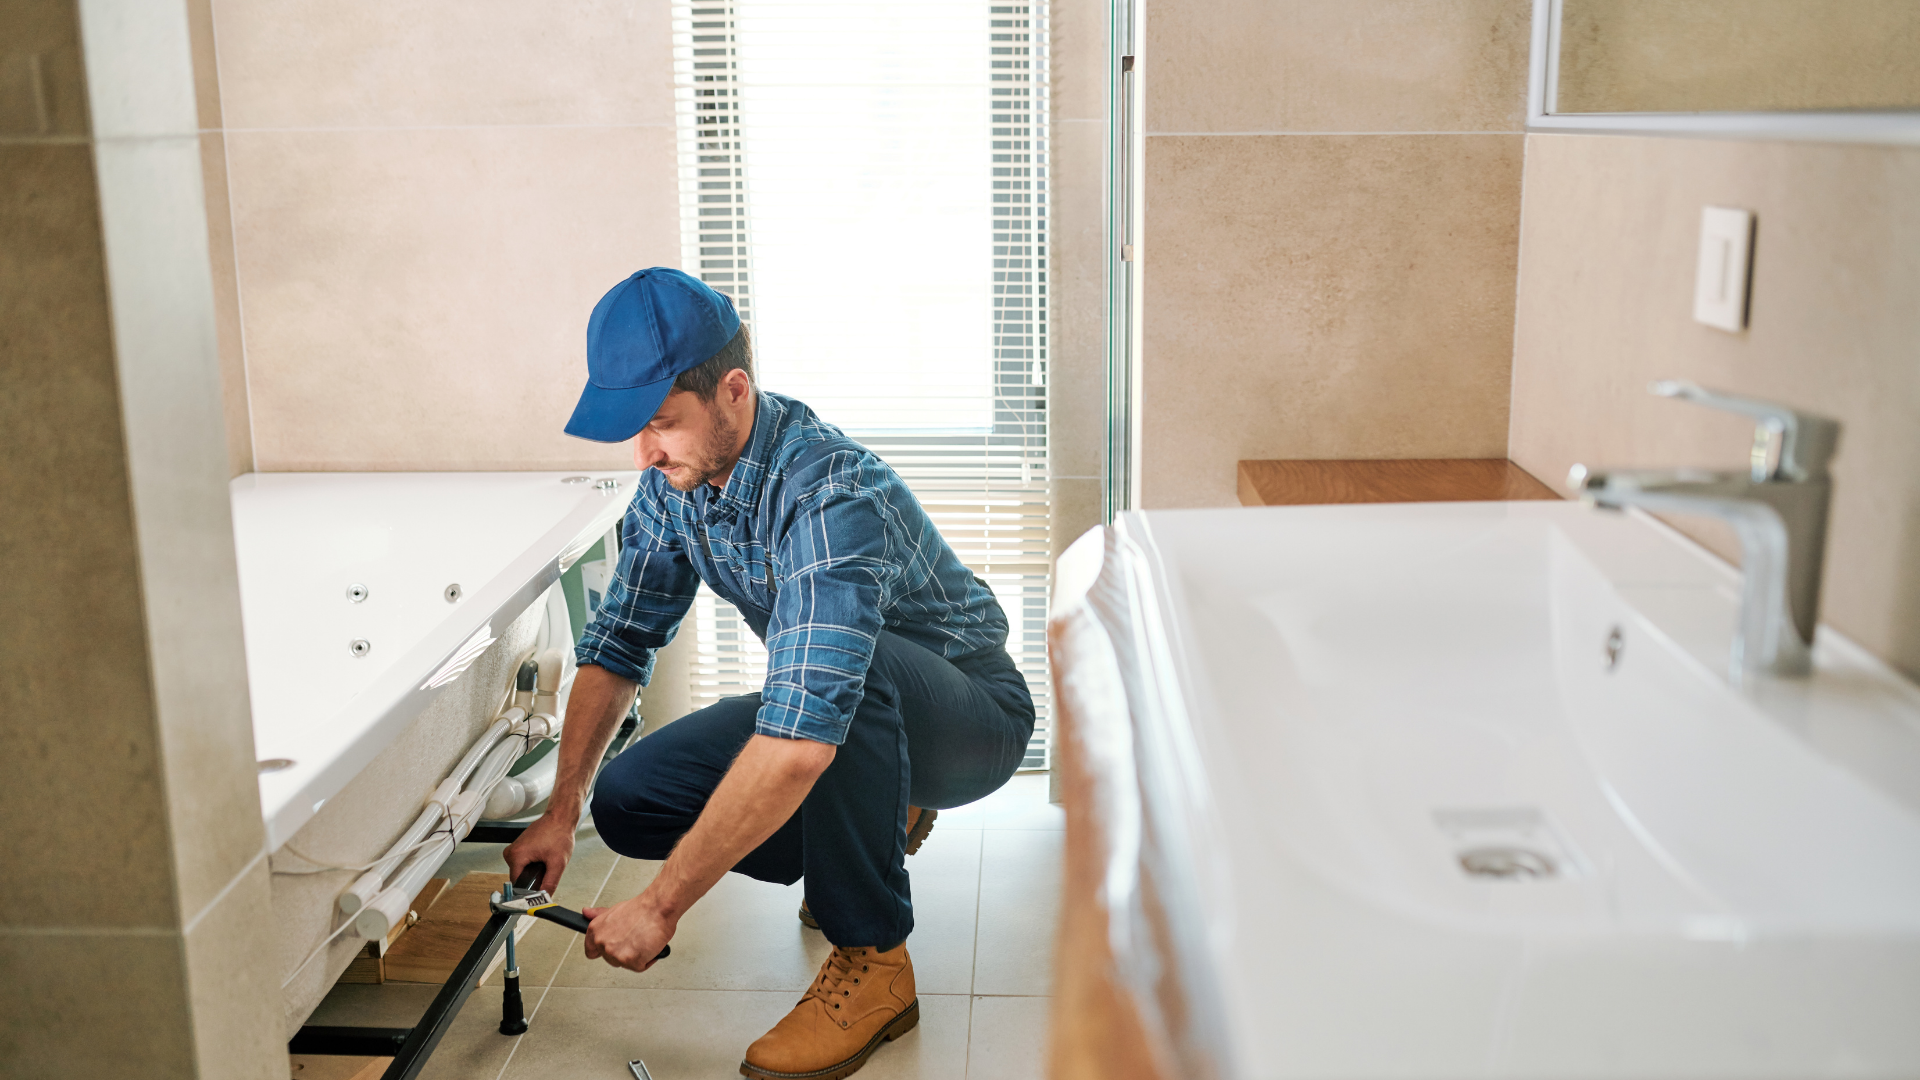 5 Tips To Add Value To Your Bathrooms